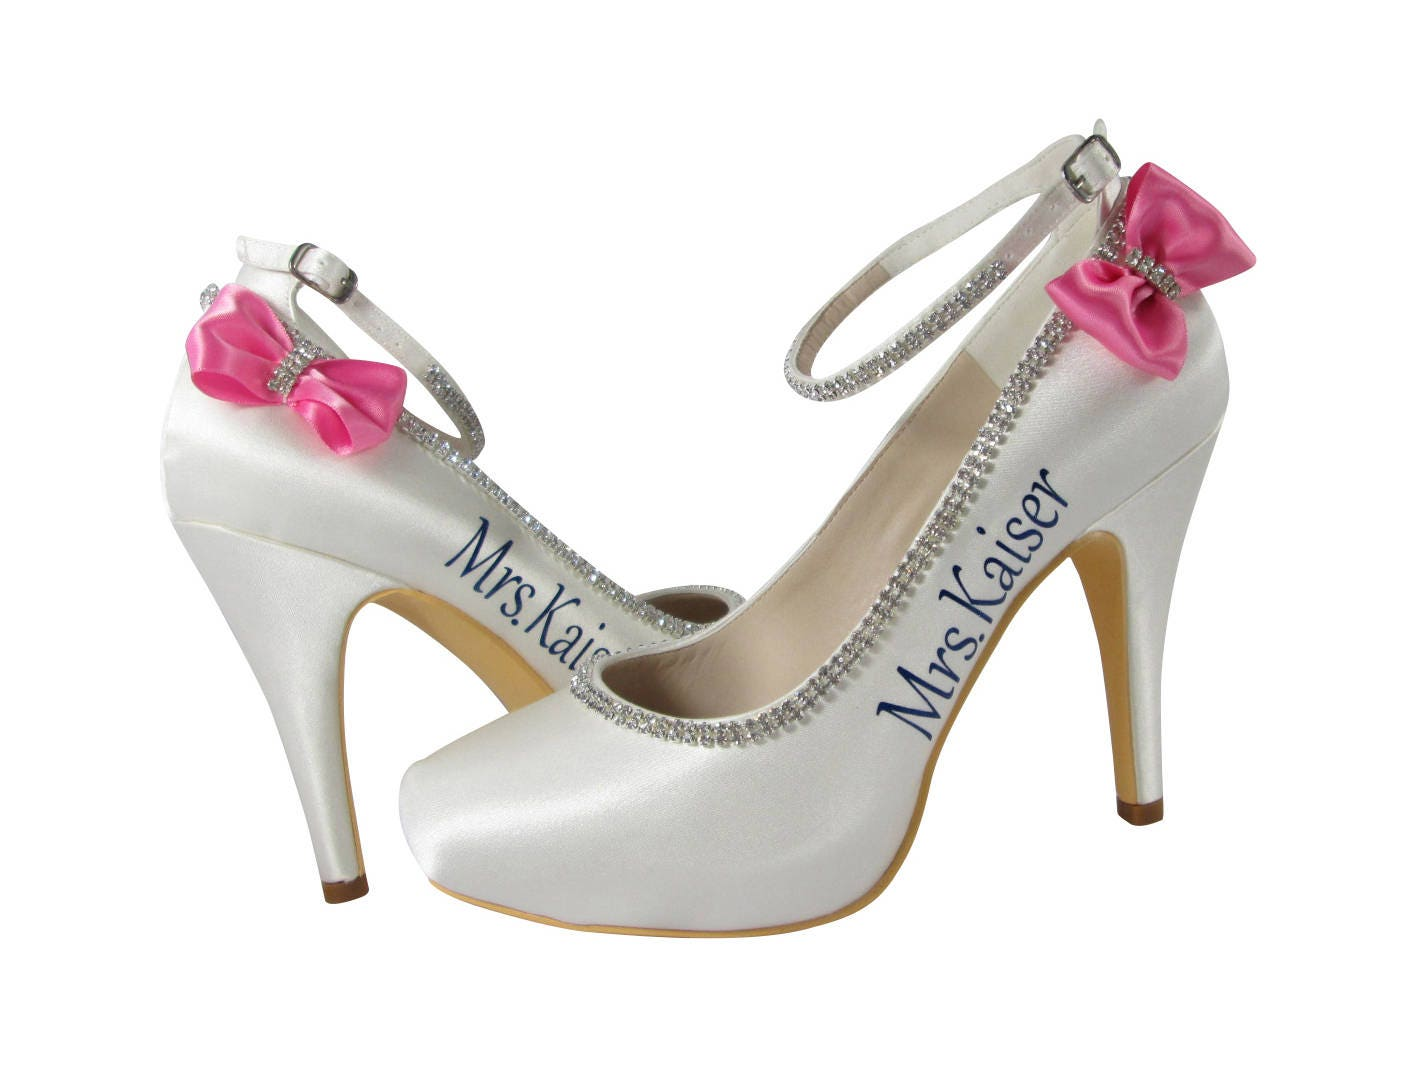 Wedding High Heels Ivory: Bridal Hot Pink & Navy On Ivory High Heel With Ankle Strap